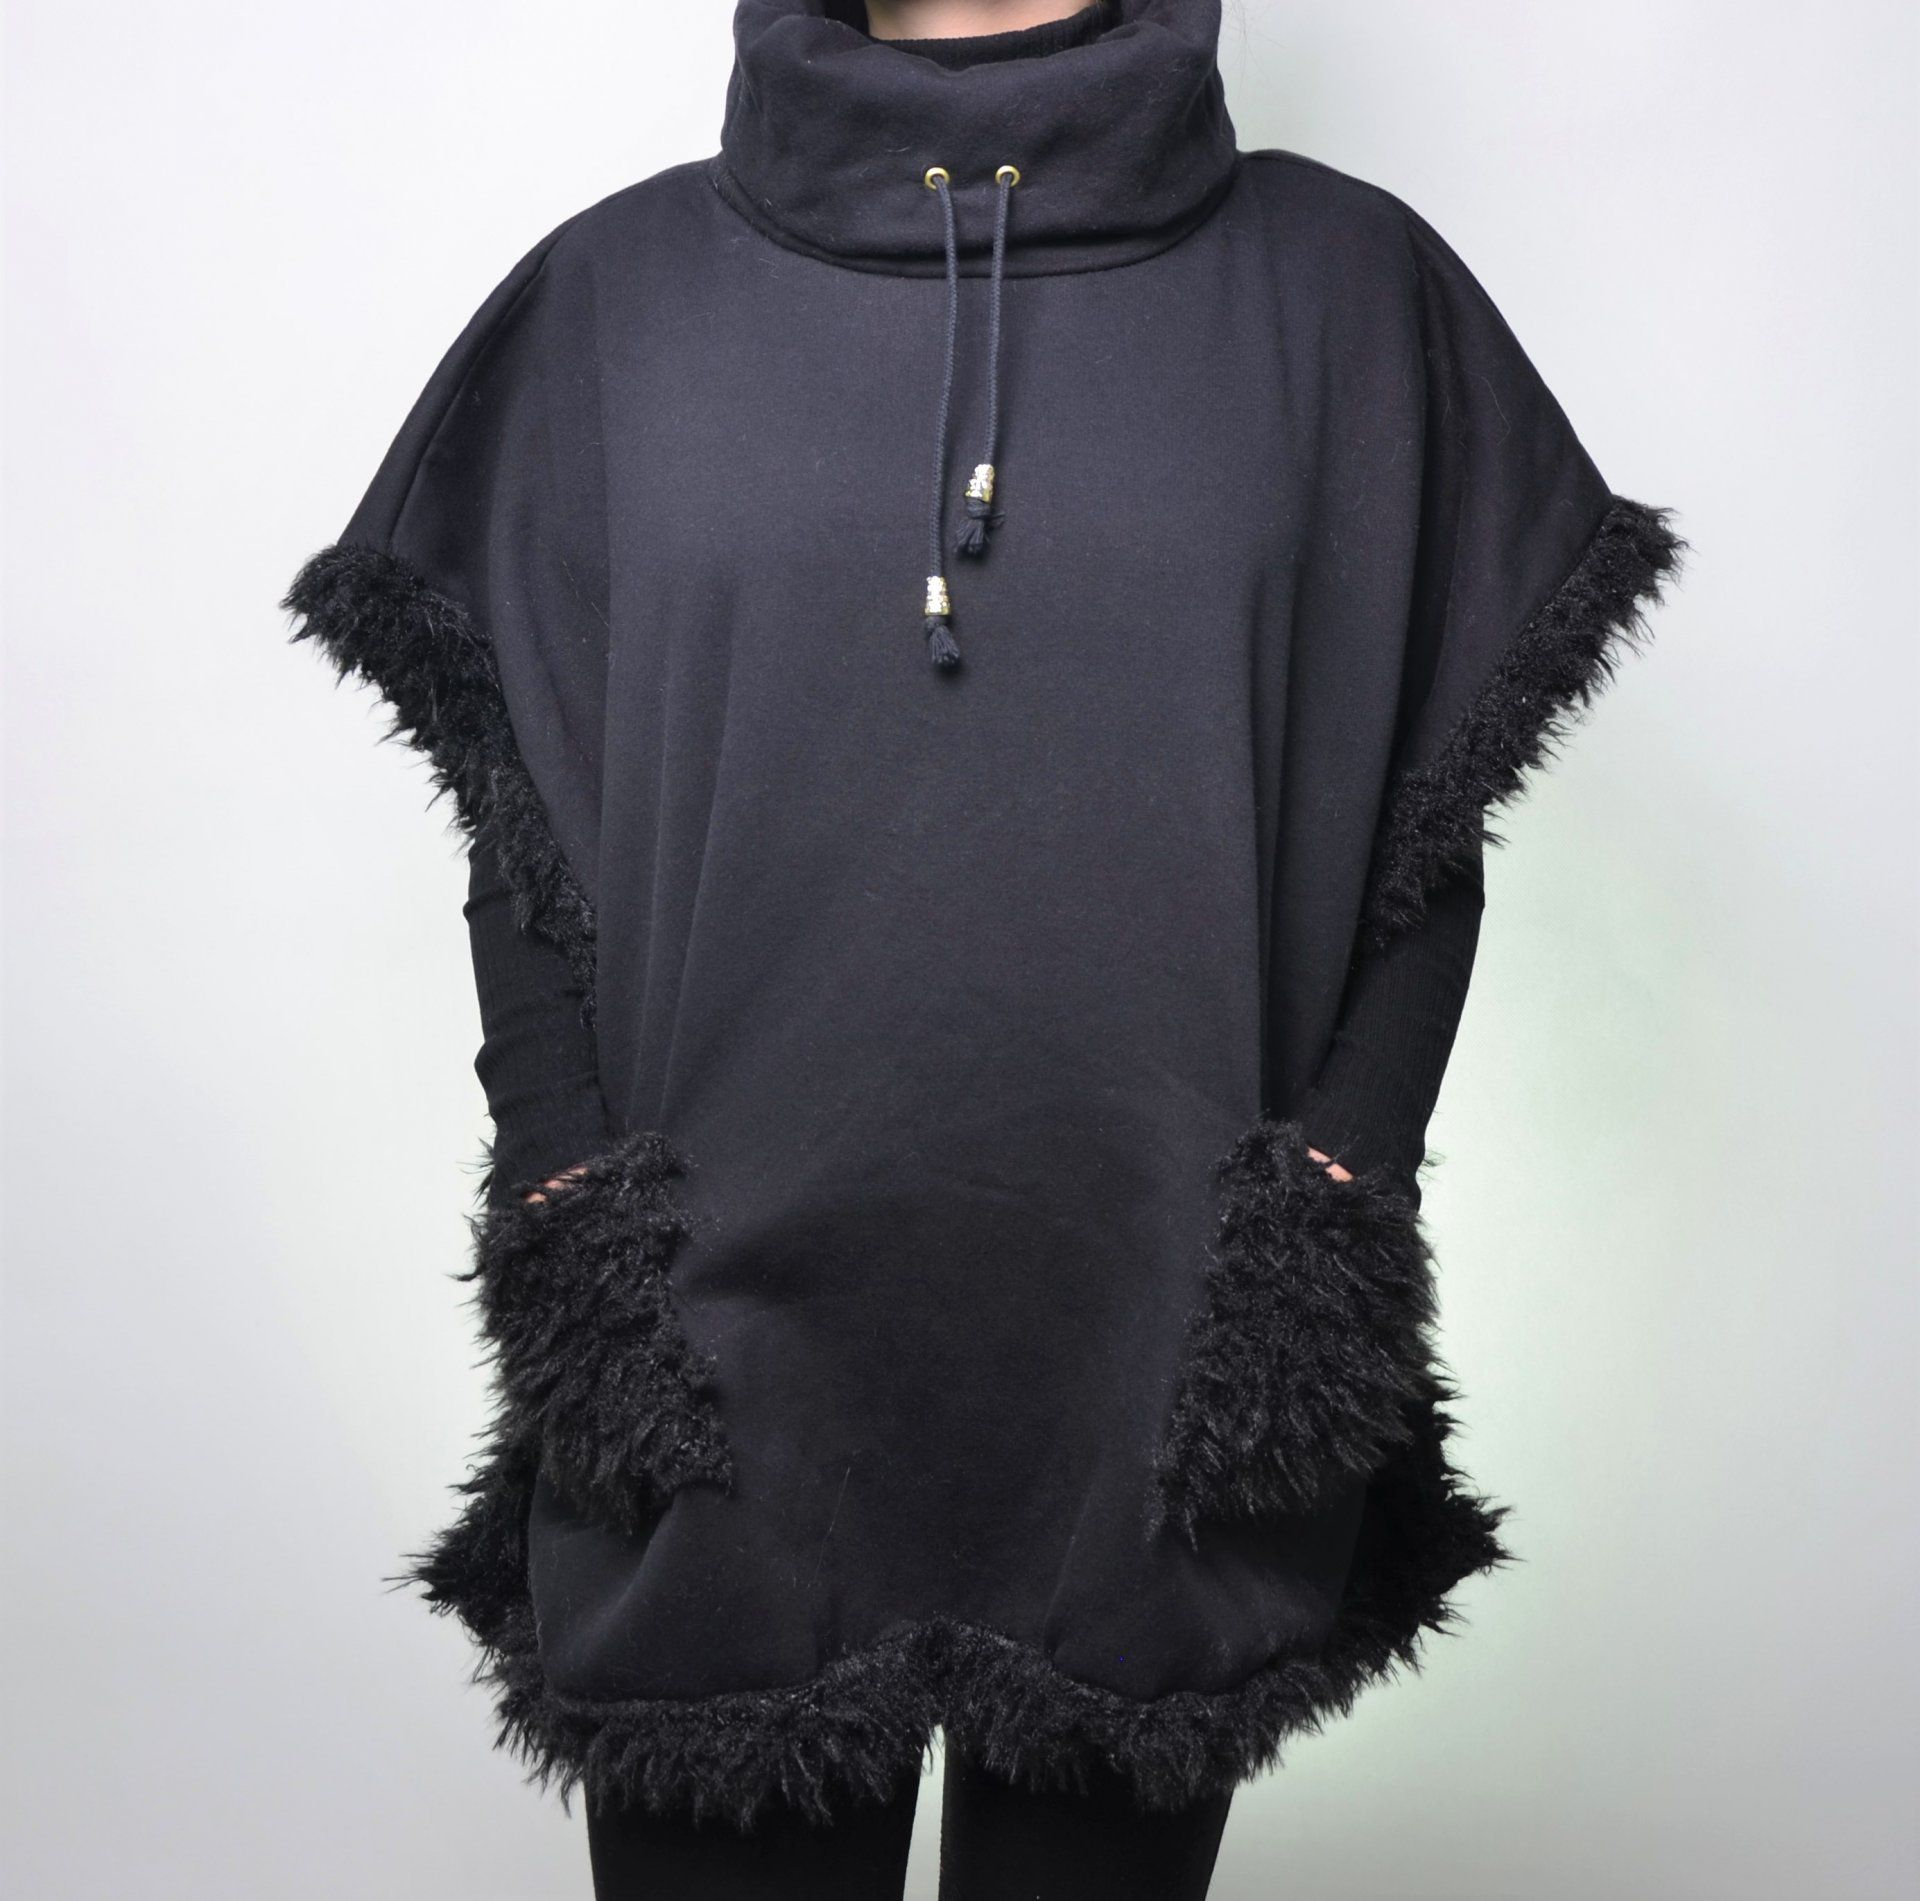 Poncho Moletom c/ Pele 097IF17